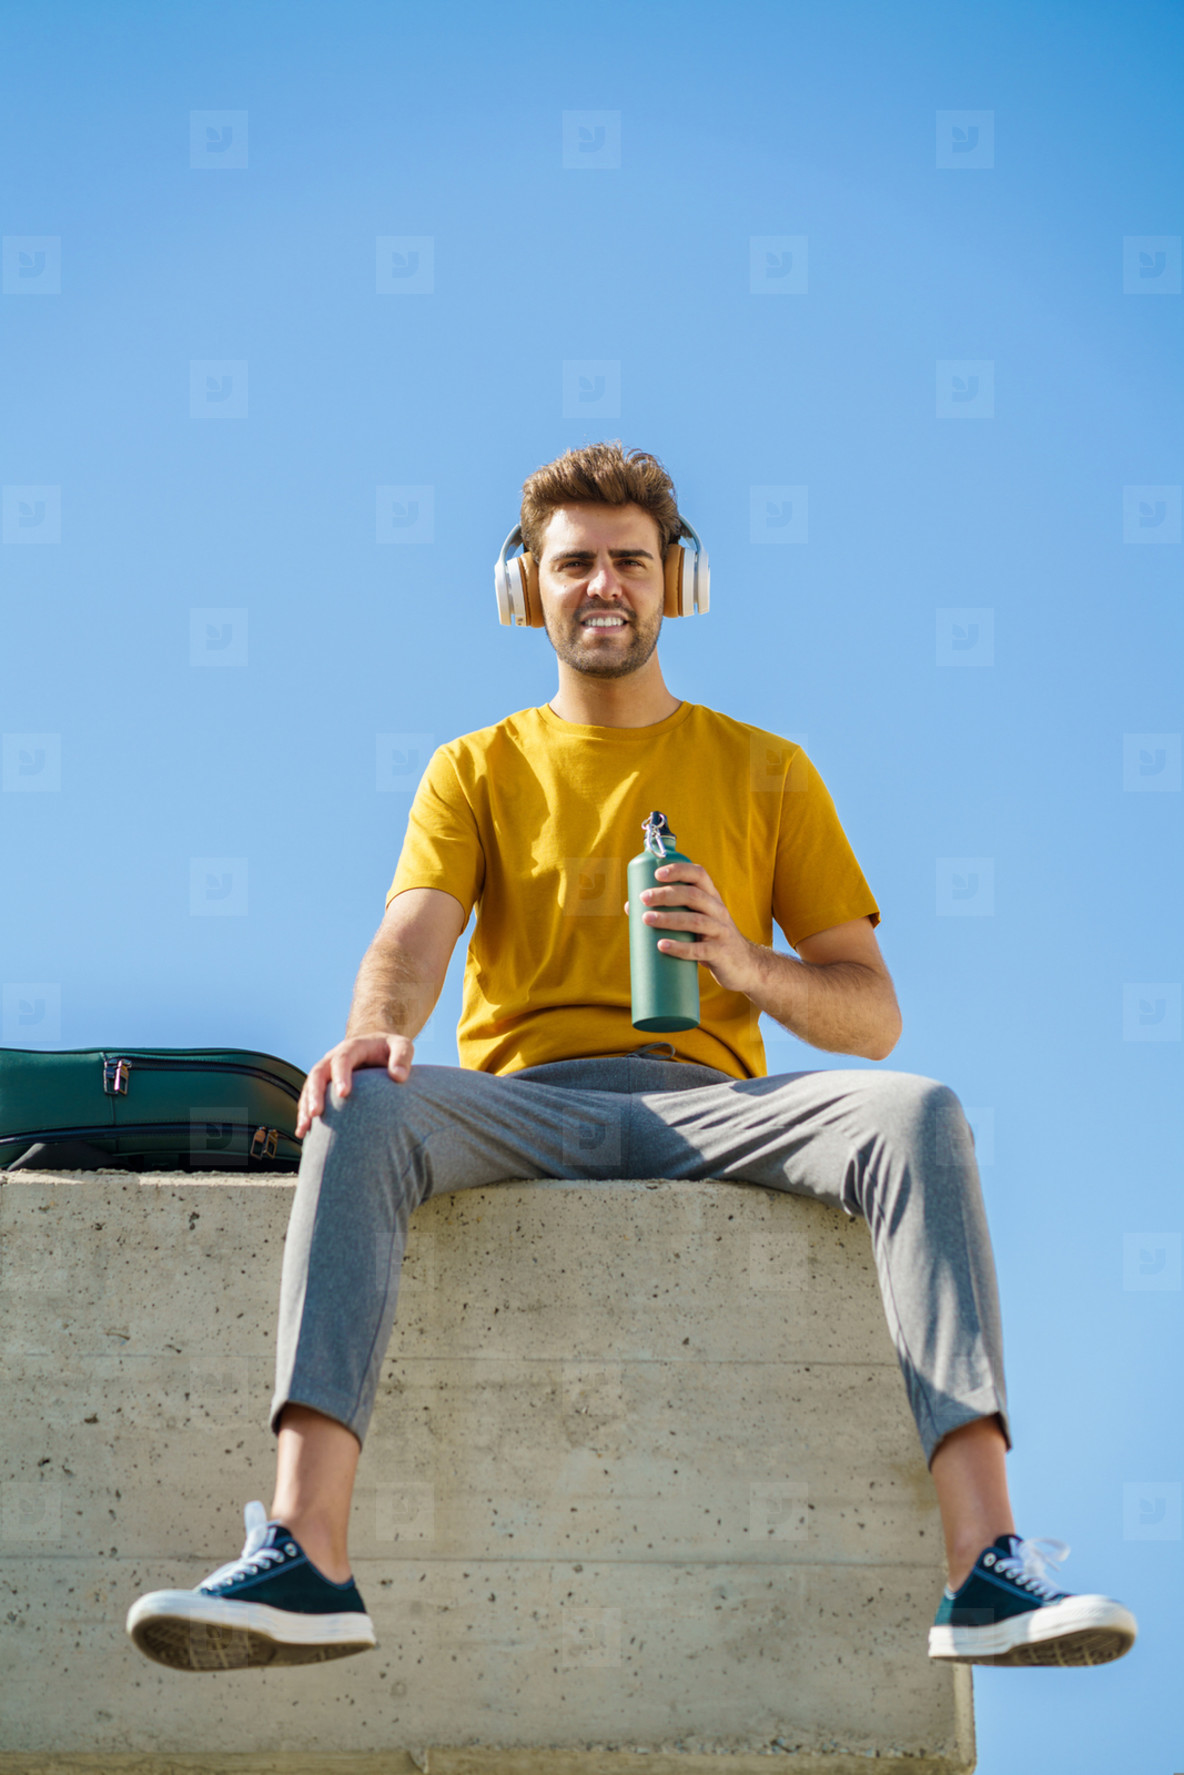 Male sitting outside using an aluminum water bottle  headphones and backpack